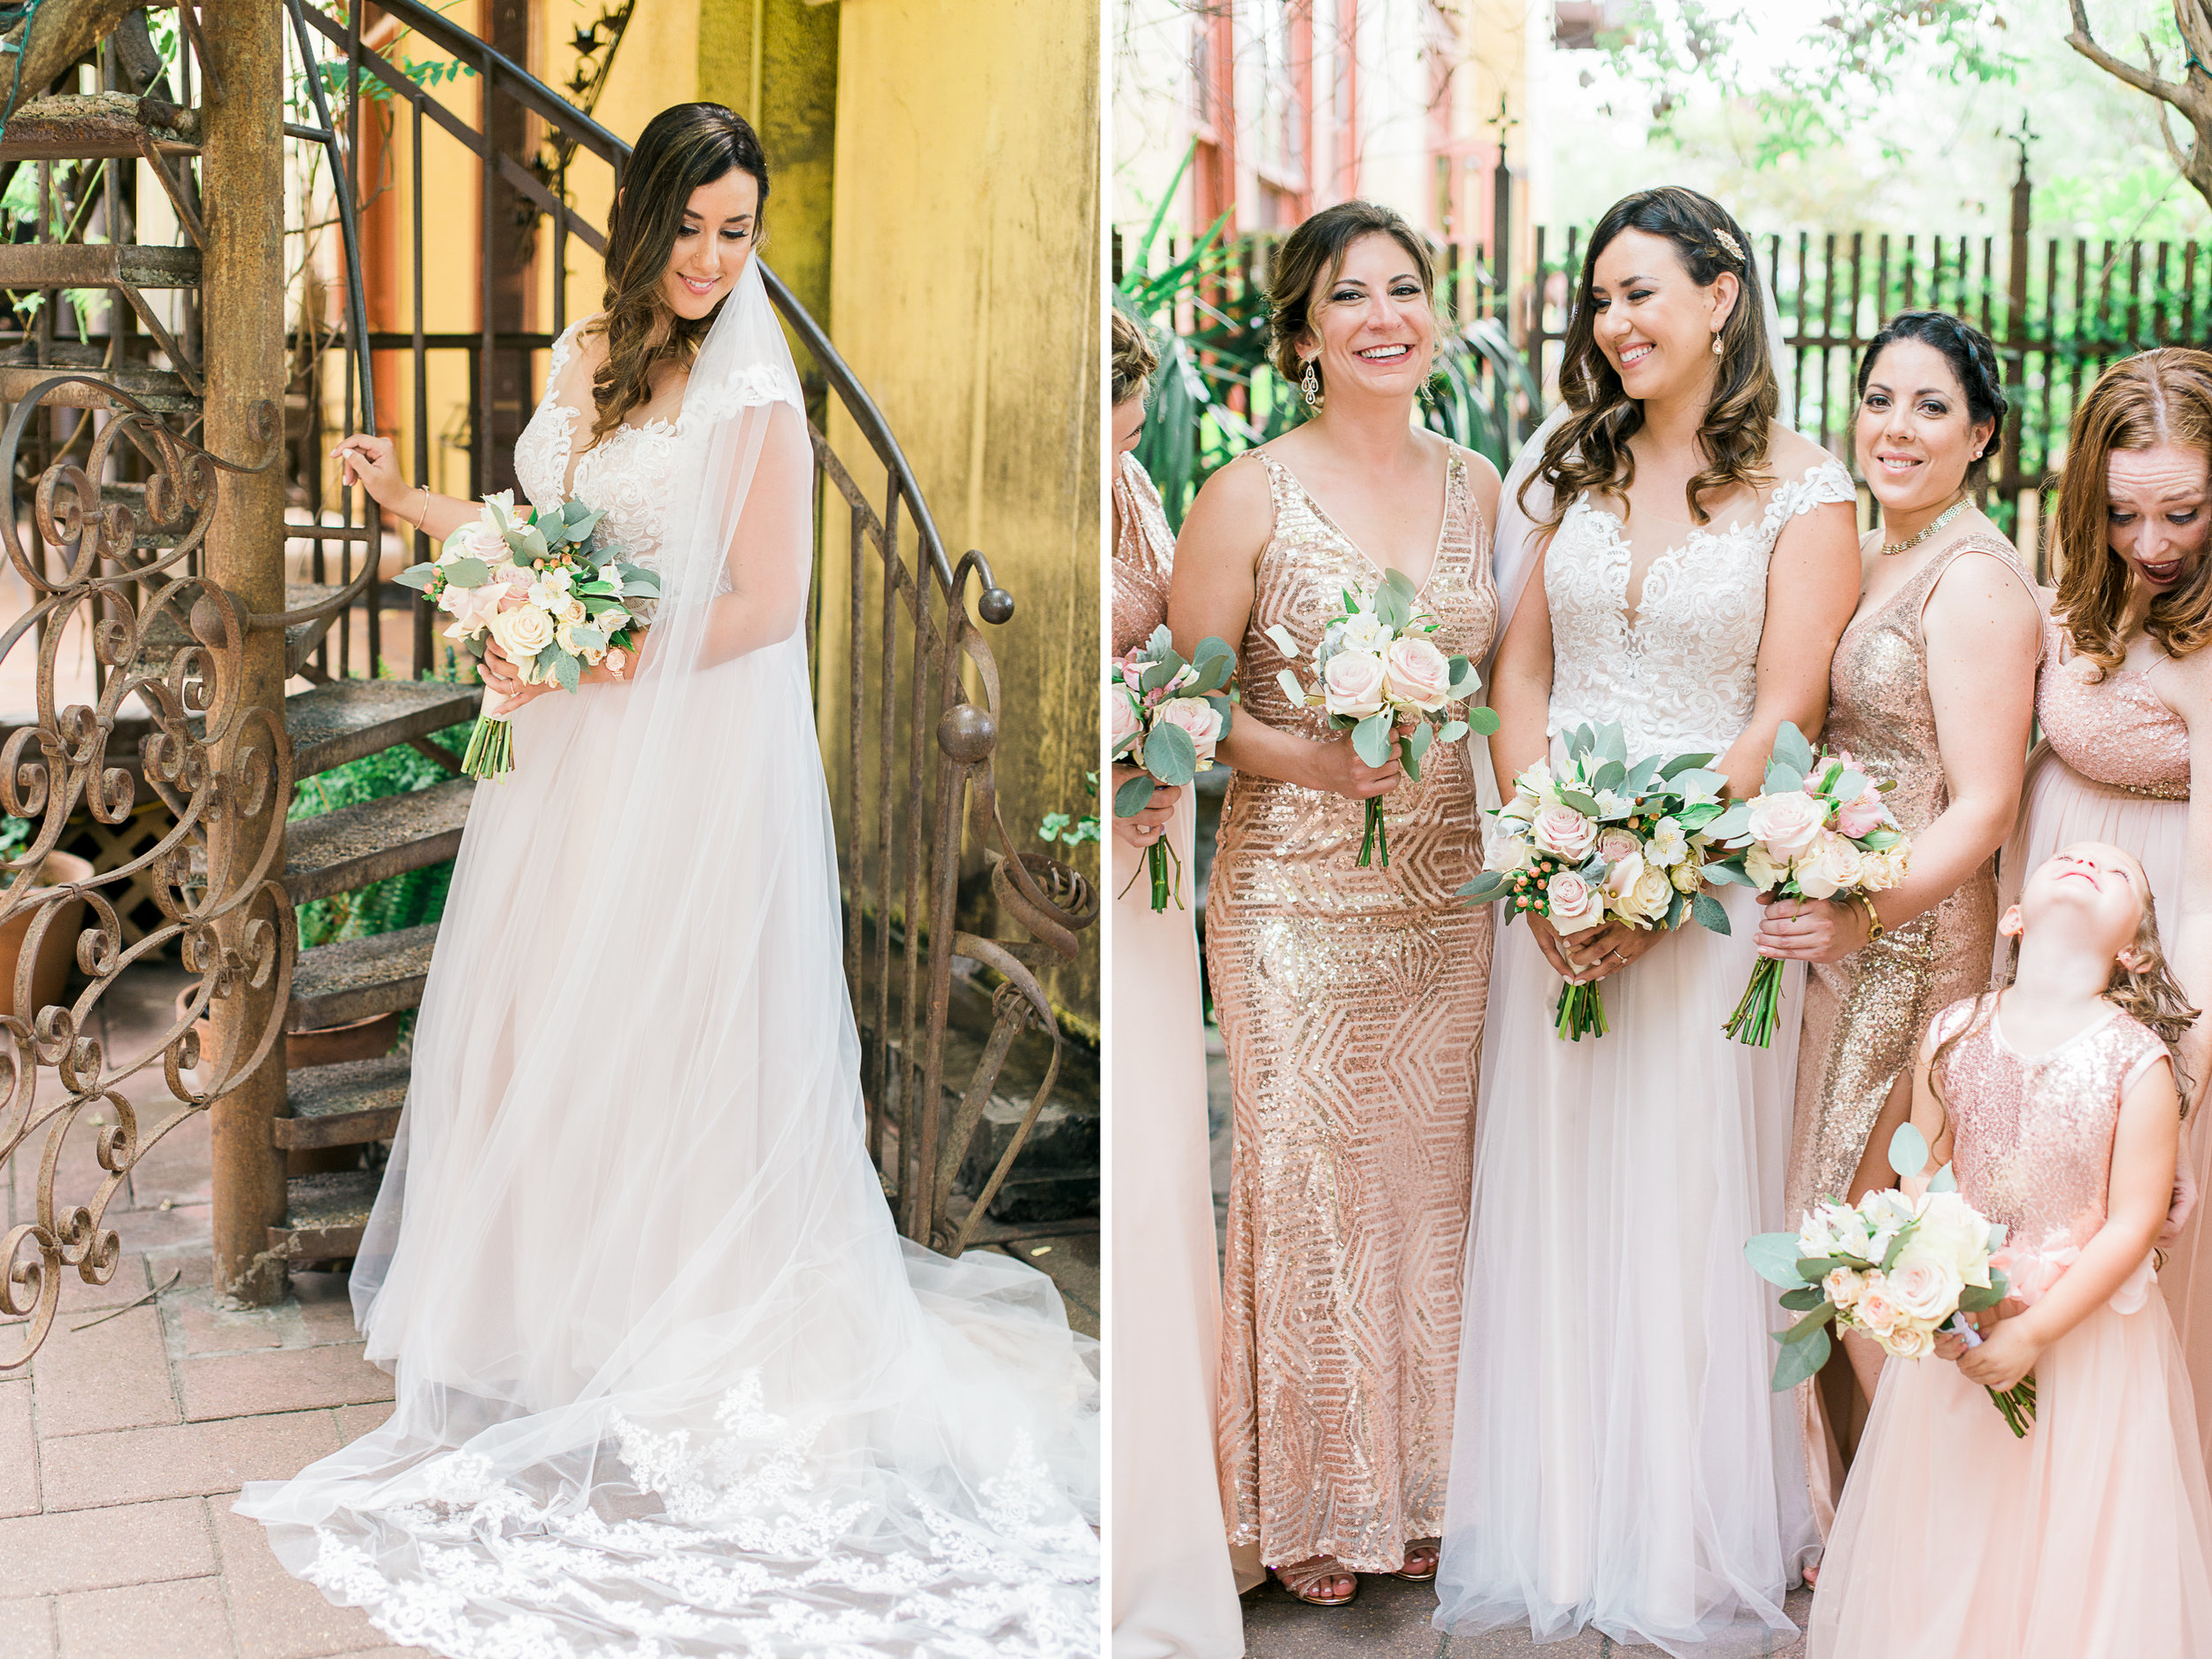 SmithWedding_HoustonTexasWeddingPhotographer_LightandAiry_FilmPhotographer_AvantGarden_HoustonHeightsWedding7.jpg